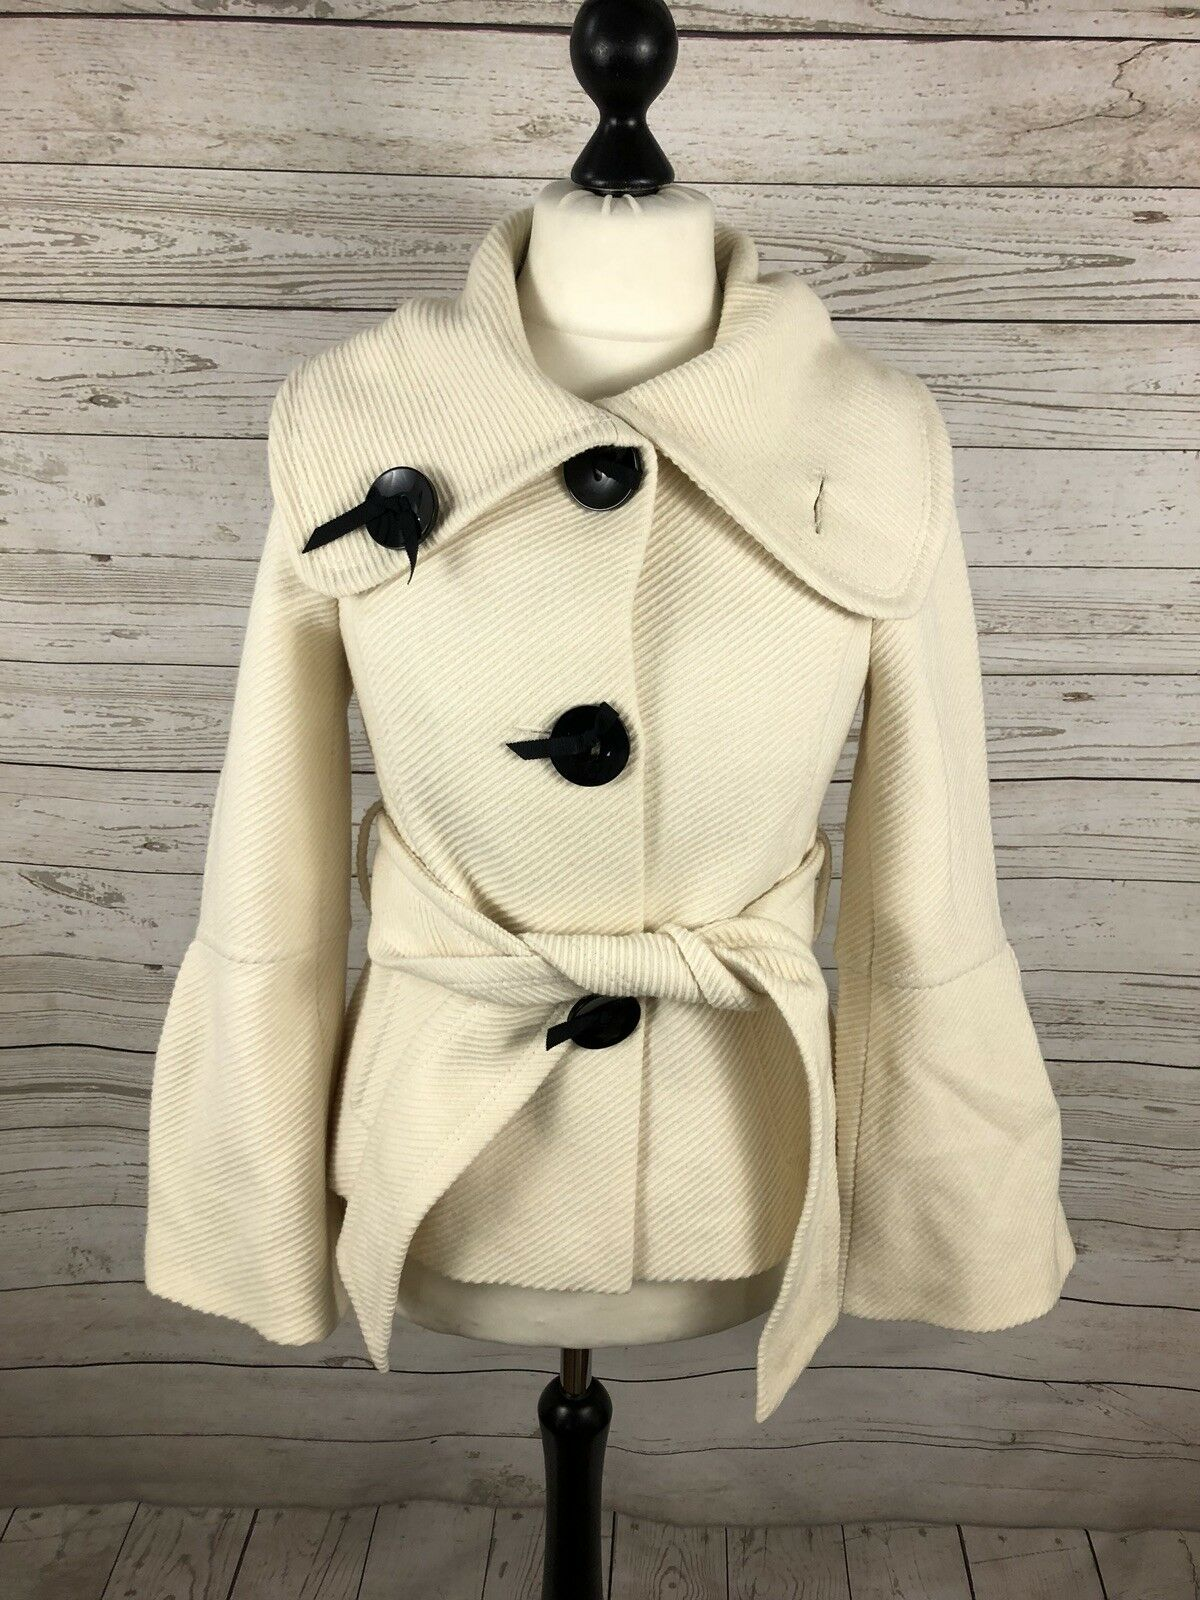 COAST Wool Coat - UK10 - Cream - Great Condition - Women's